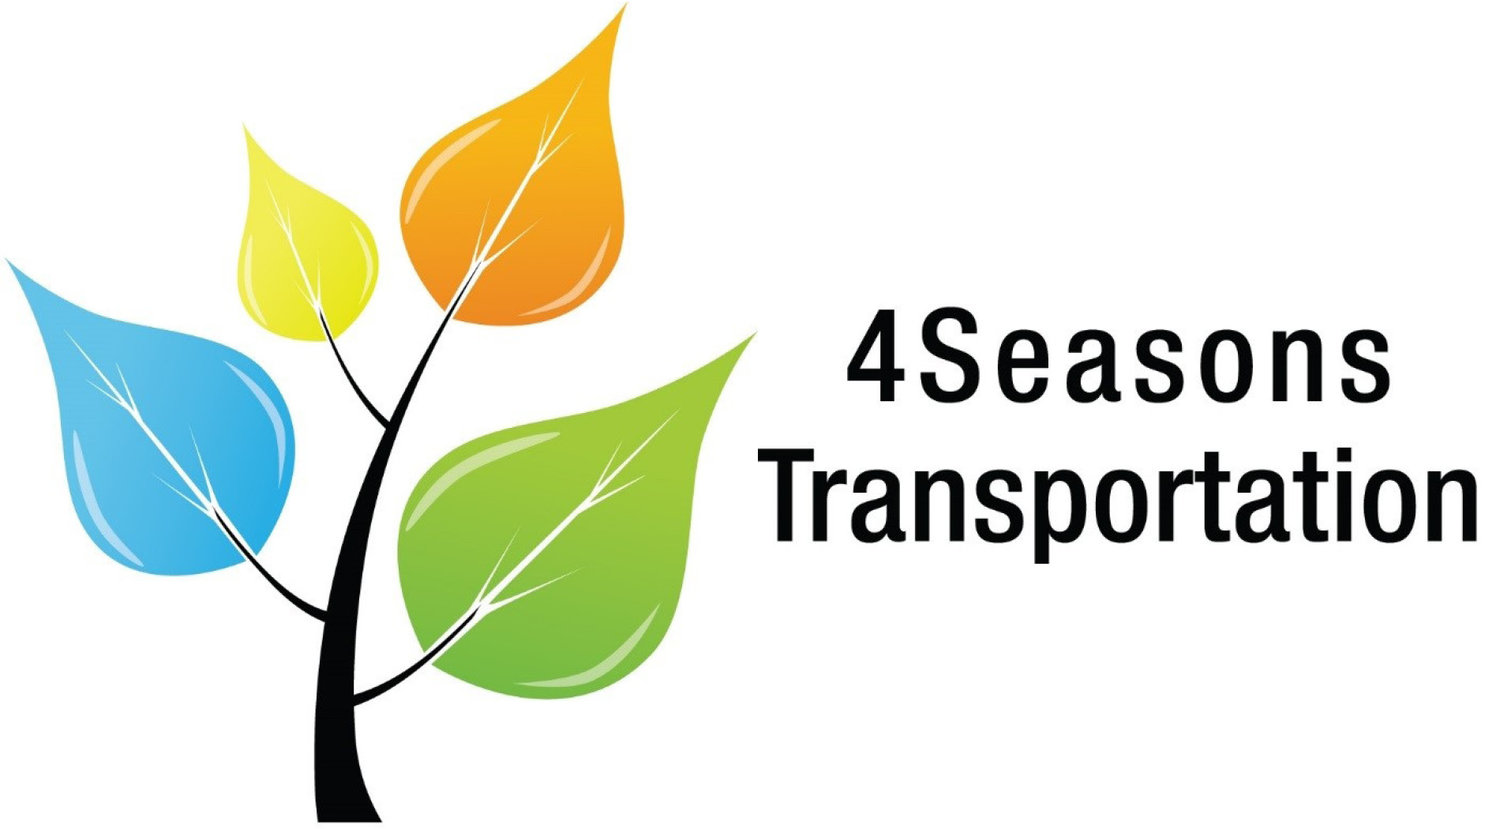 4Seasons Transportation